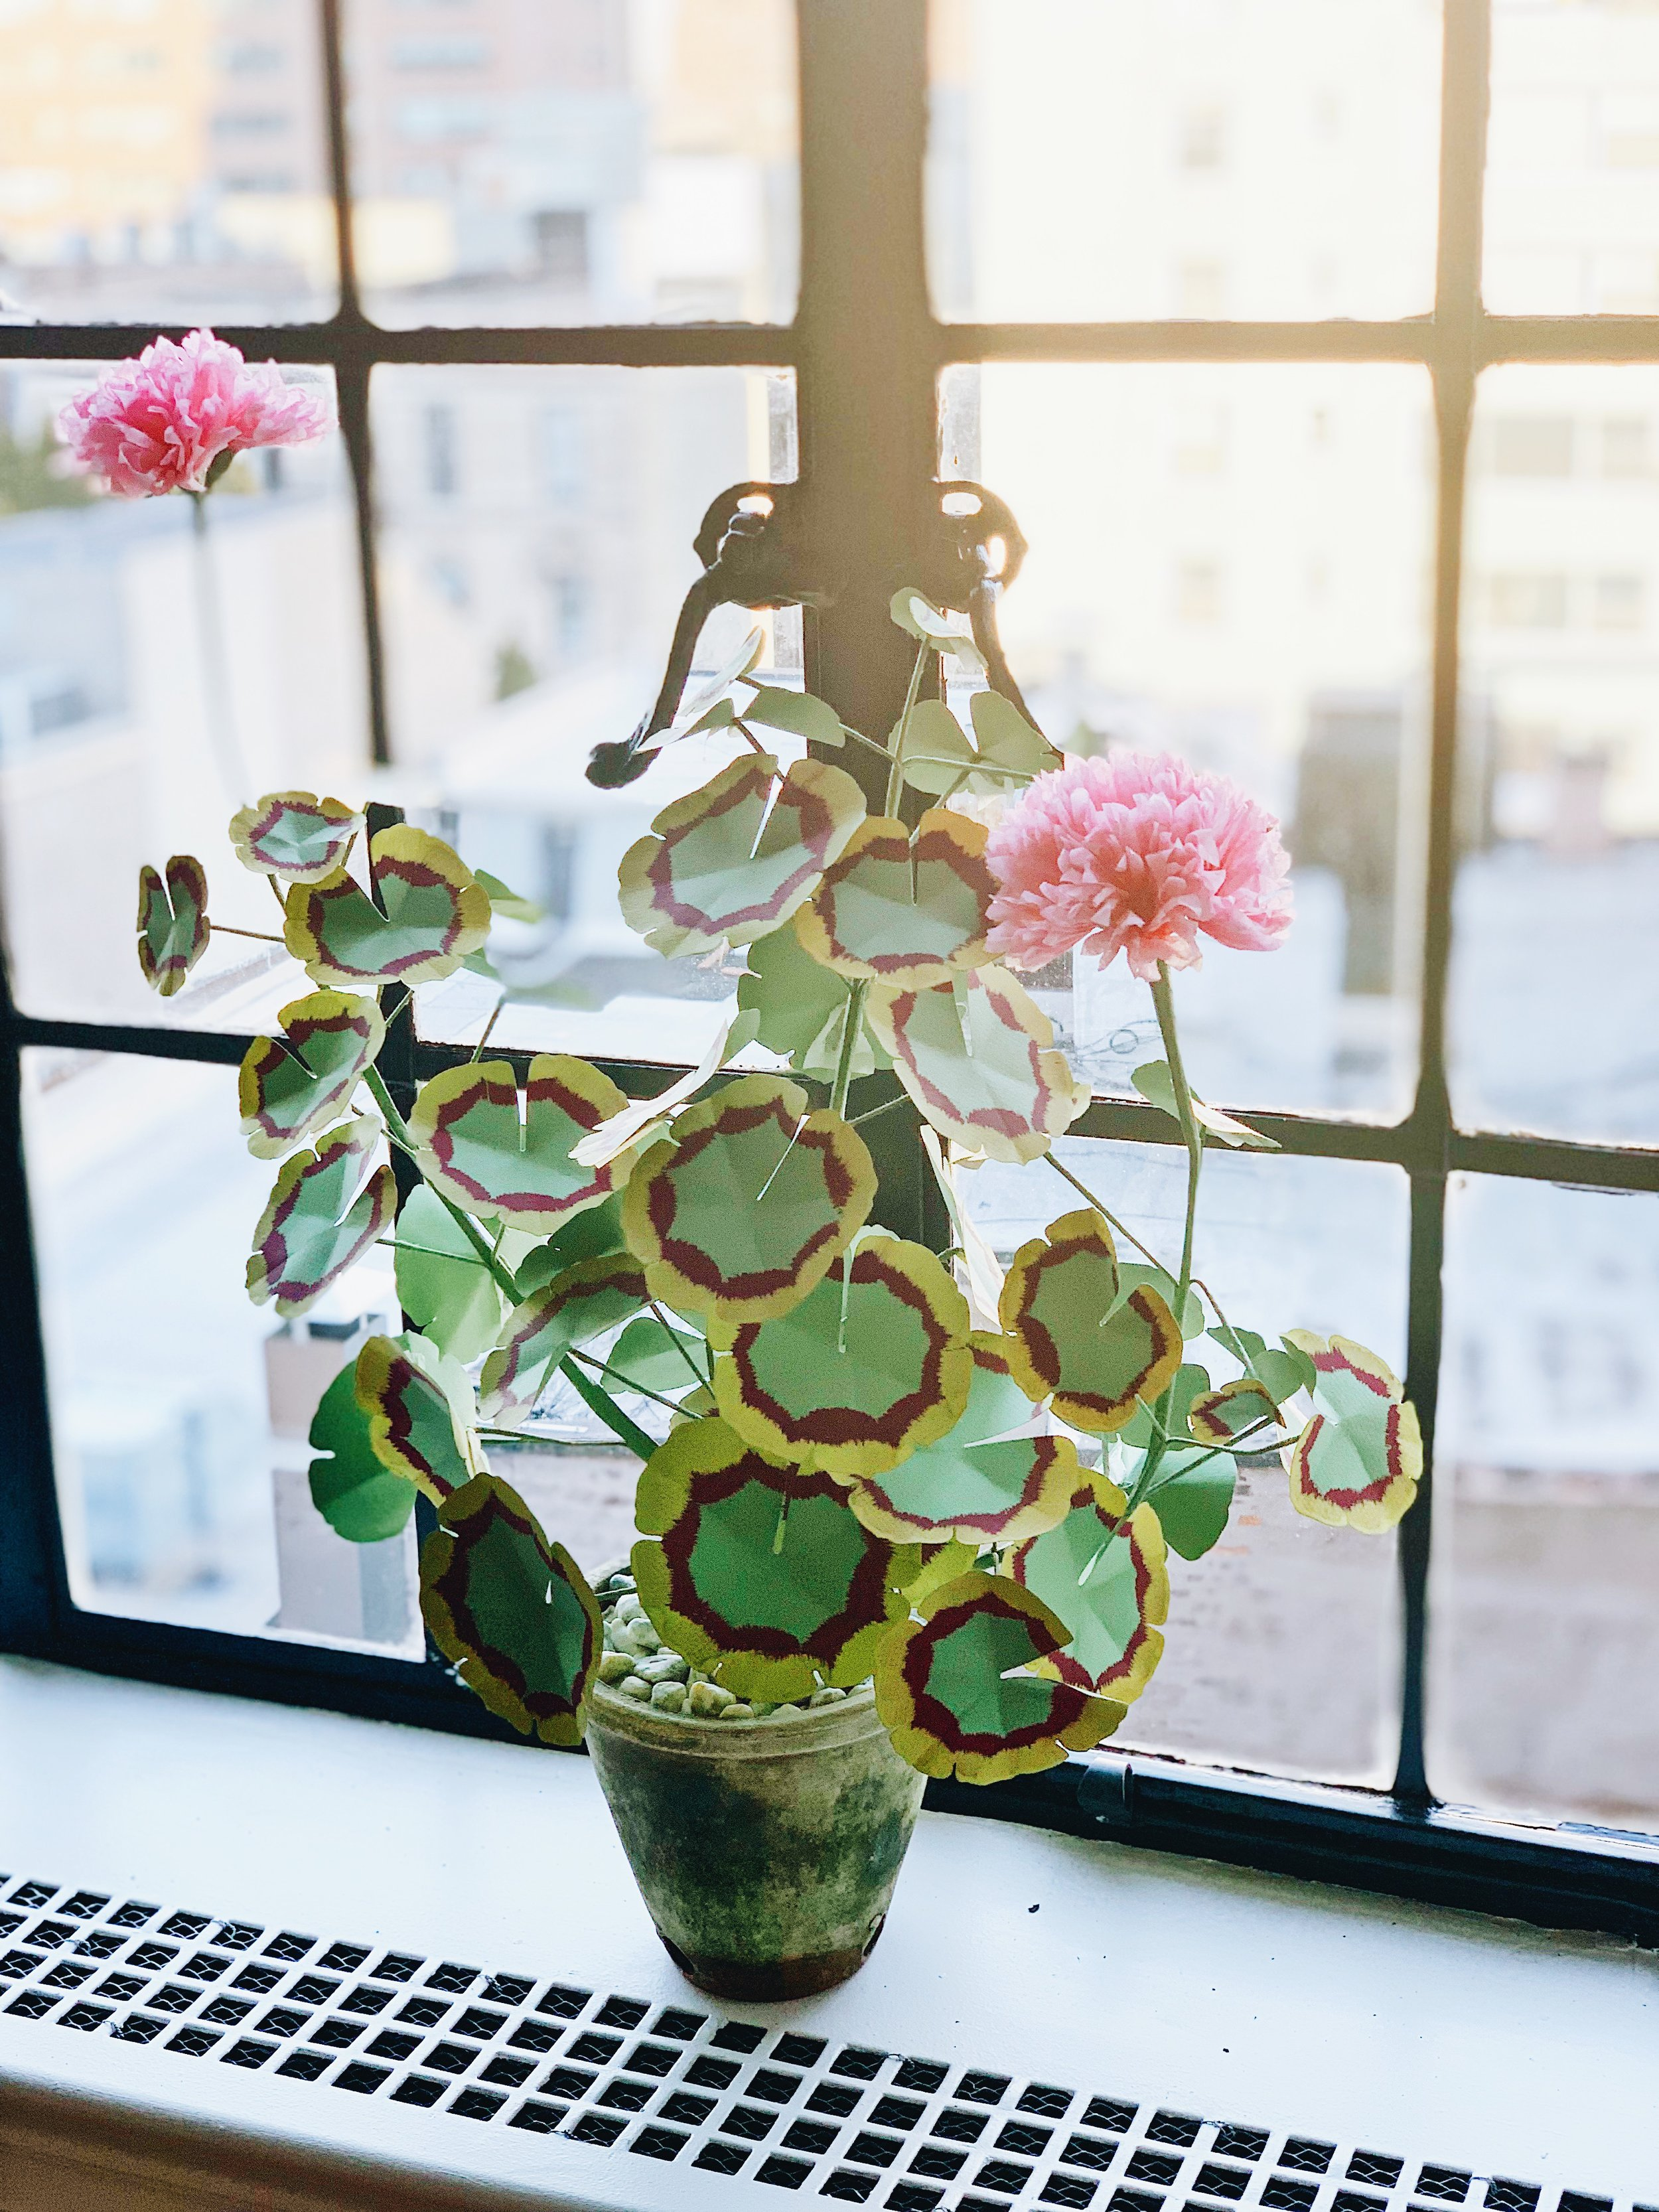 My kind of house plant! (I love all the paper flowers from Livia at The Green Vase. I picked up this style at  John Derian.  )